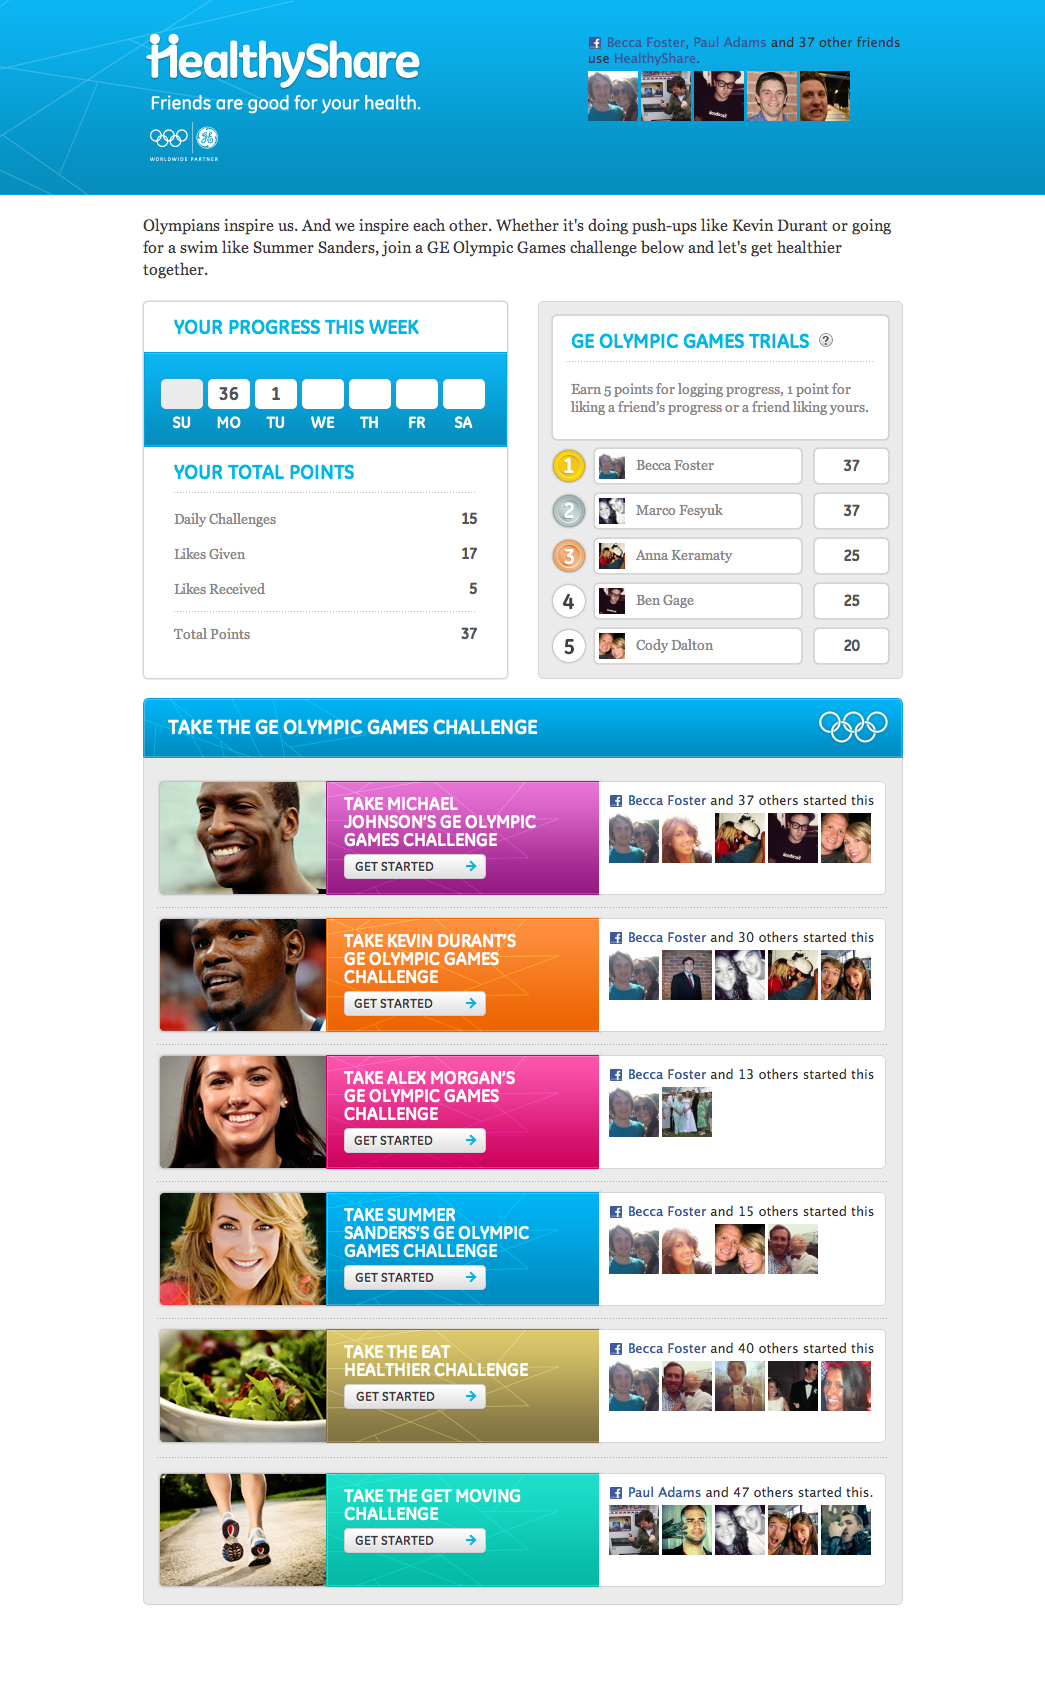 healthyshare_homepage